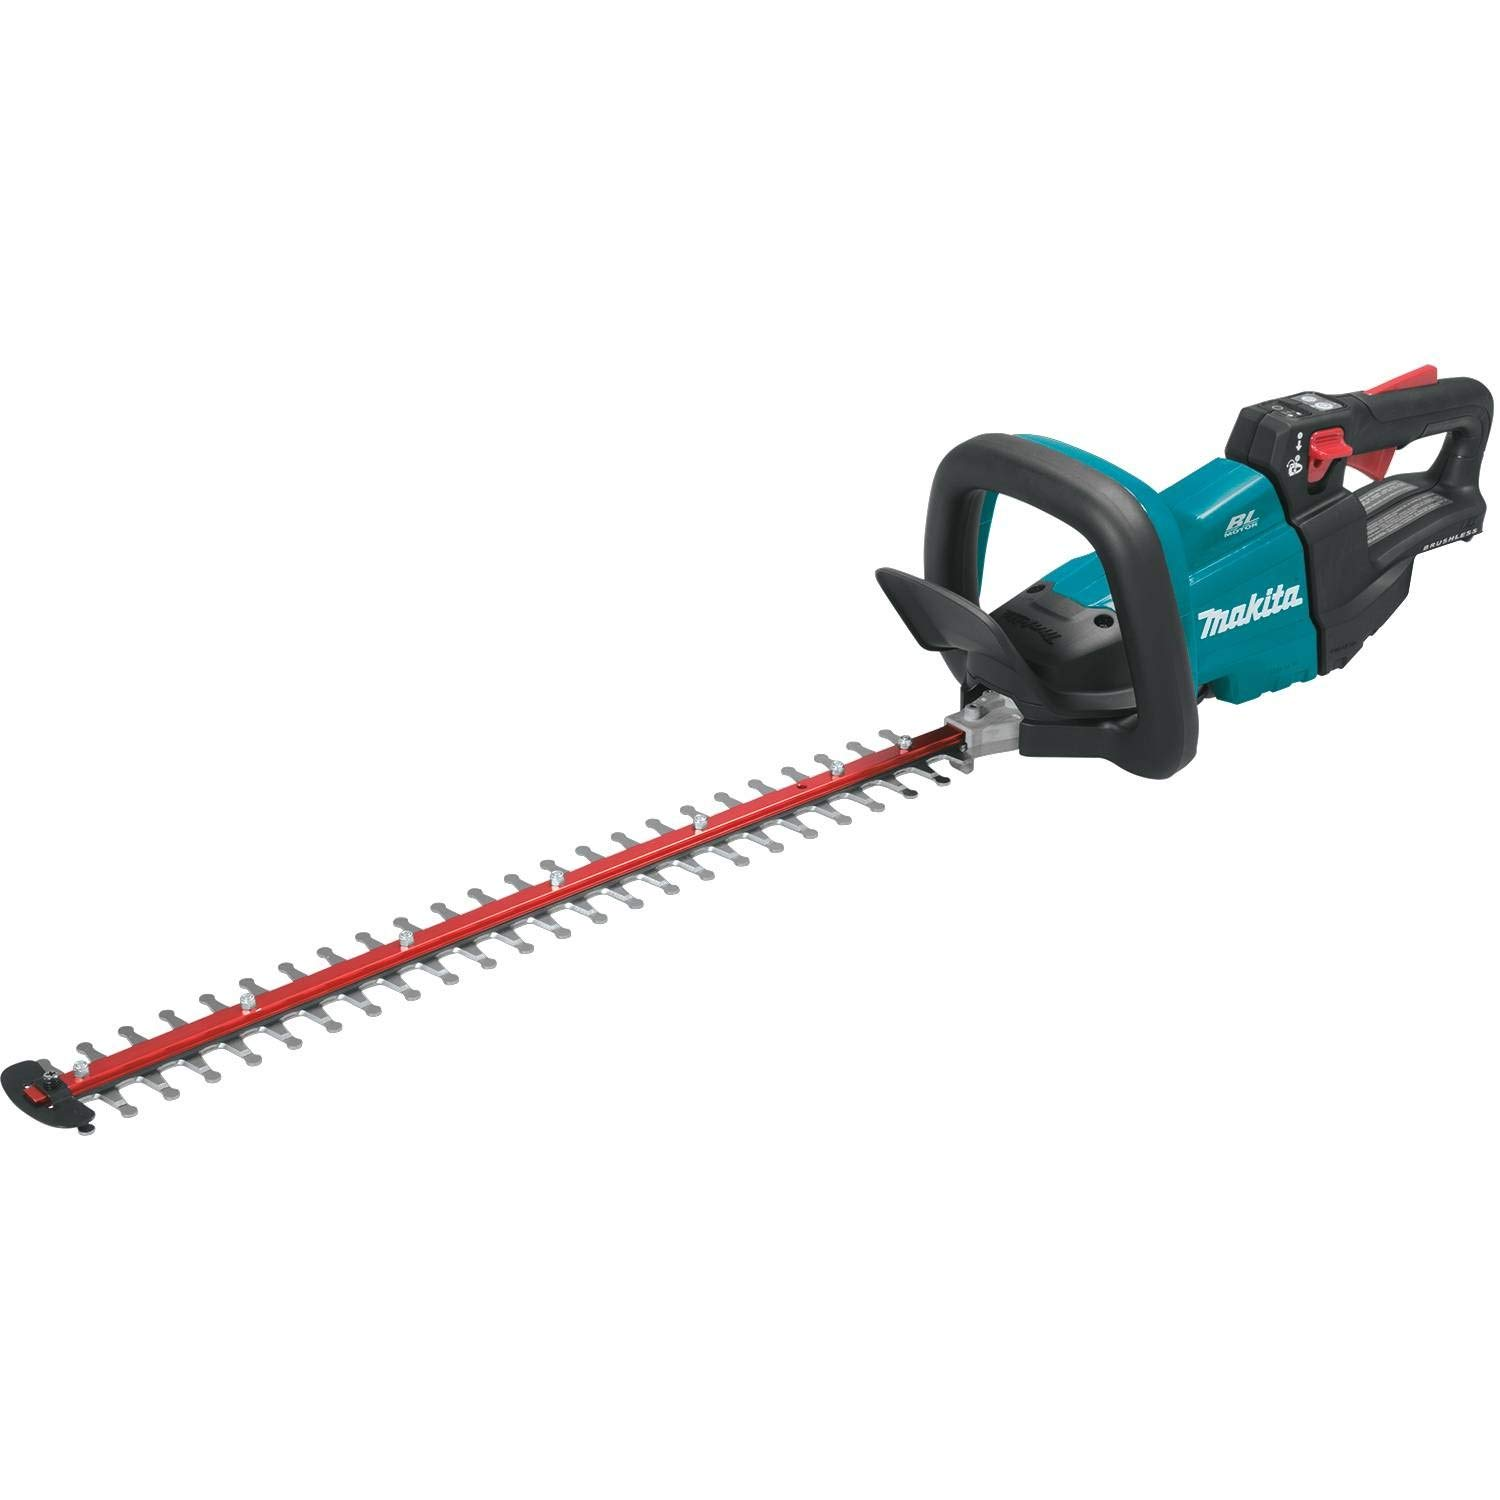 Makita XHU07Z 18V LXT Lithium-Ion Cordless Brushless 24 Hedge Trimmer, Tool Only